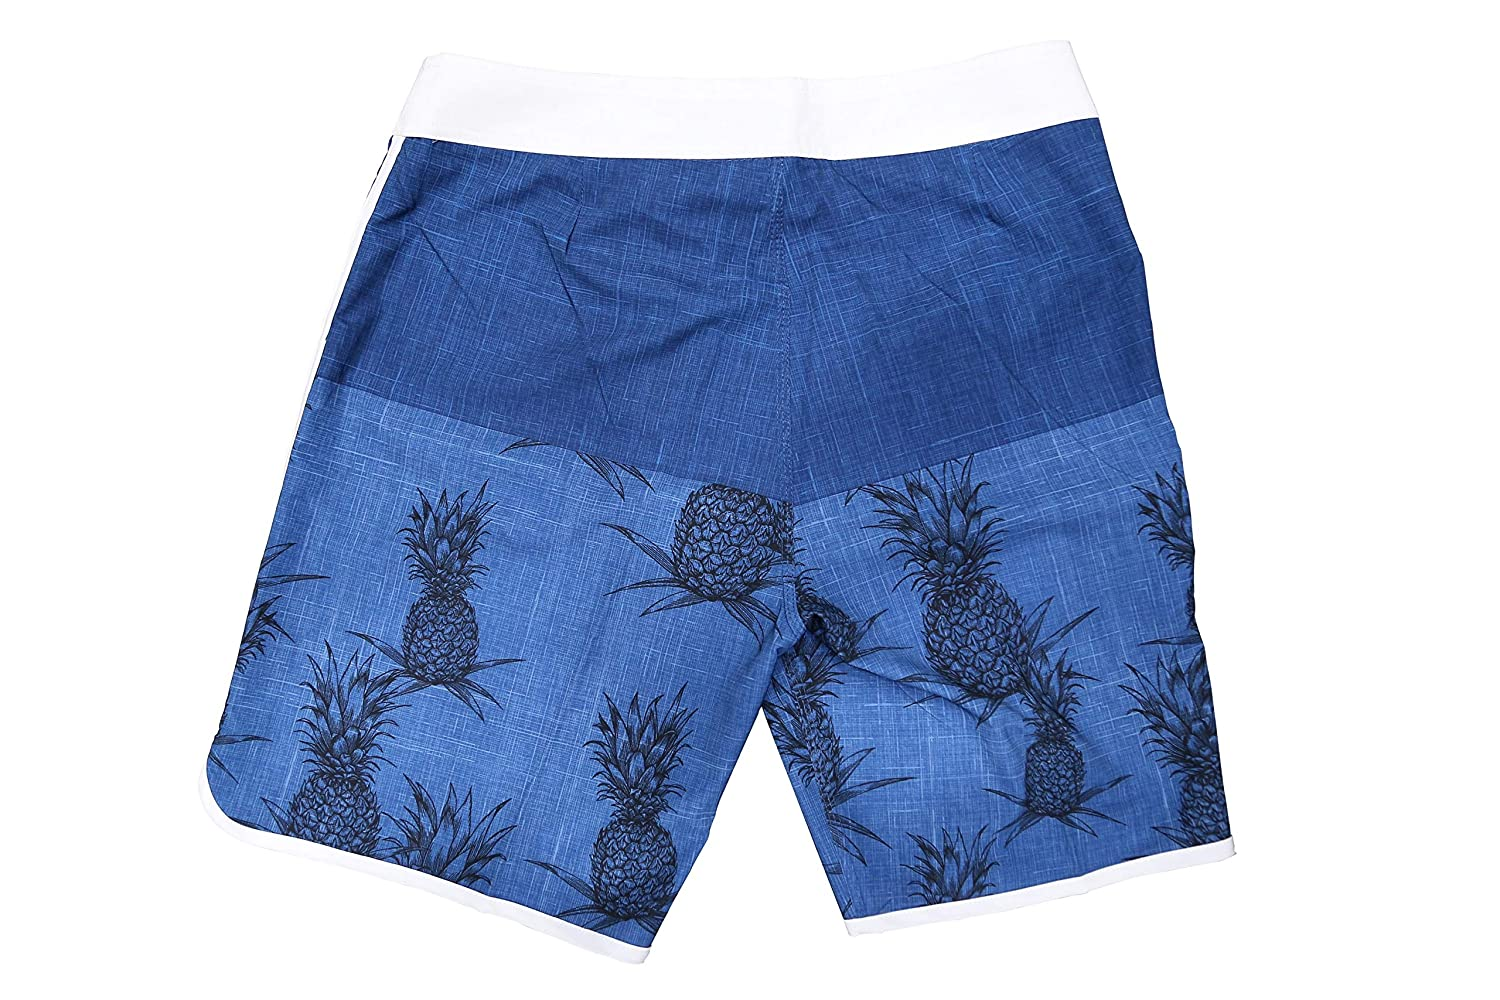 b634b1e594 ISLAND DAZE BBO - Mens Boardshort Bottle Opener Surf, Swim Tailgate Quick  Dry Swim Trunks at Amazon Men's Clothing store: